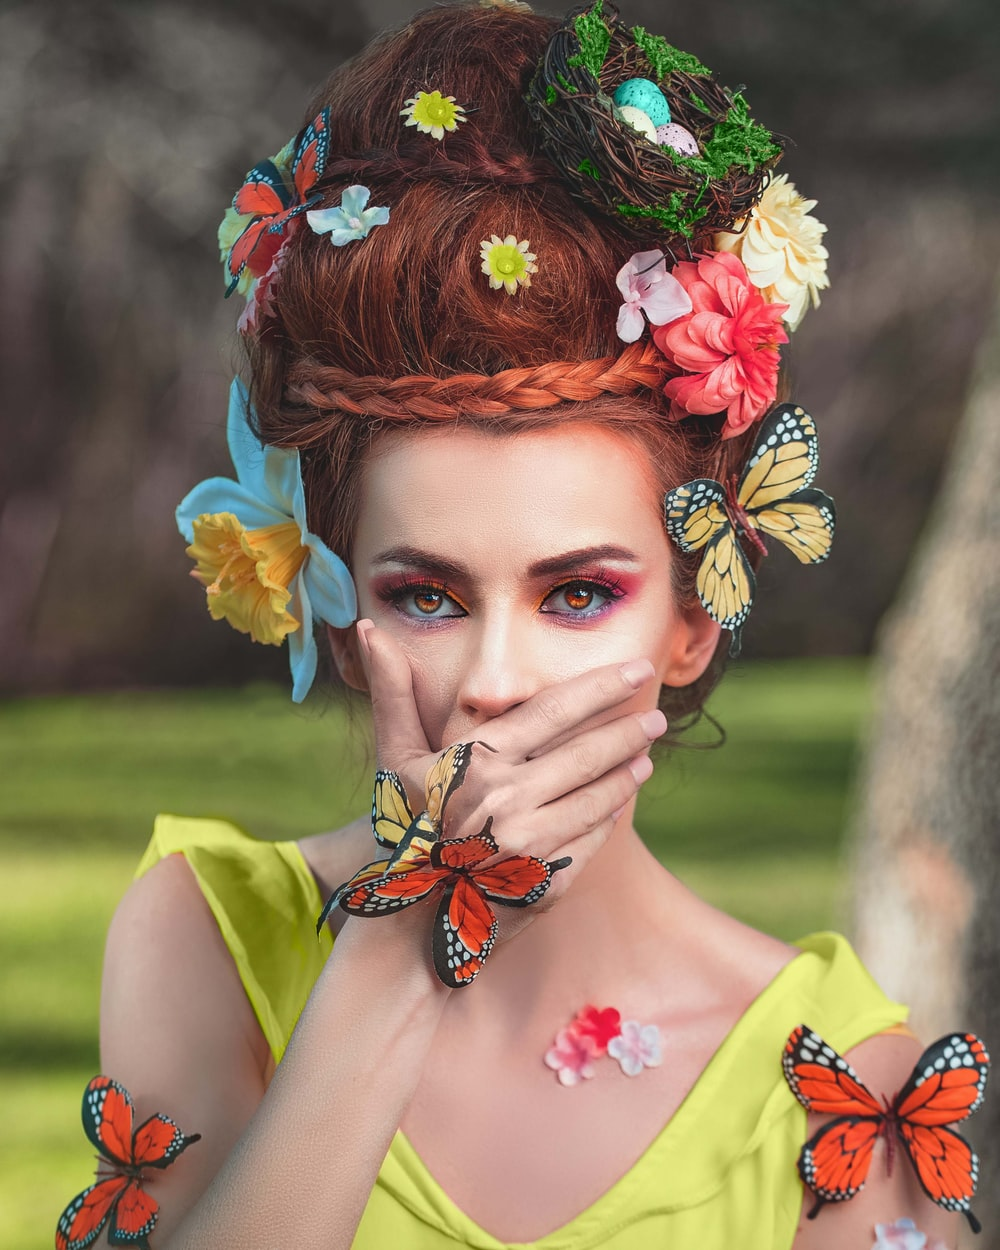 woman in yellow and red floral dress with orange flower headdress